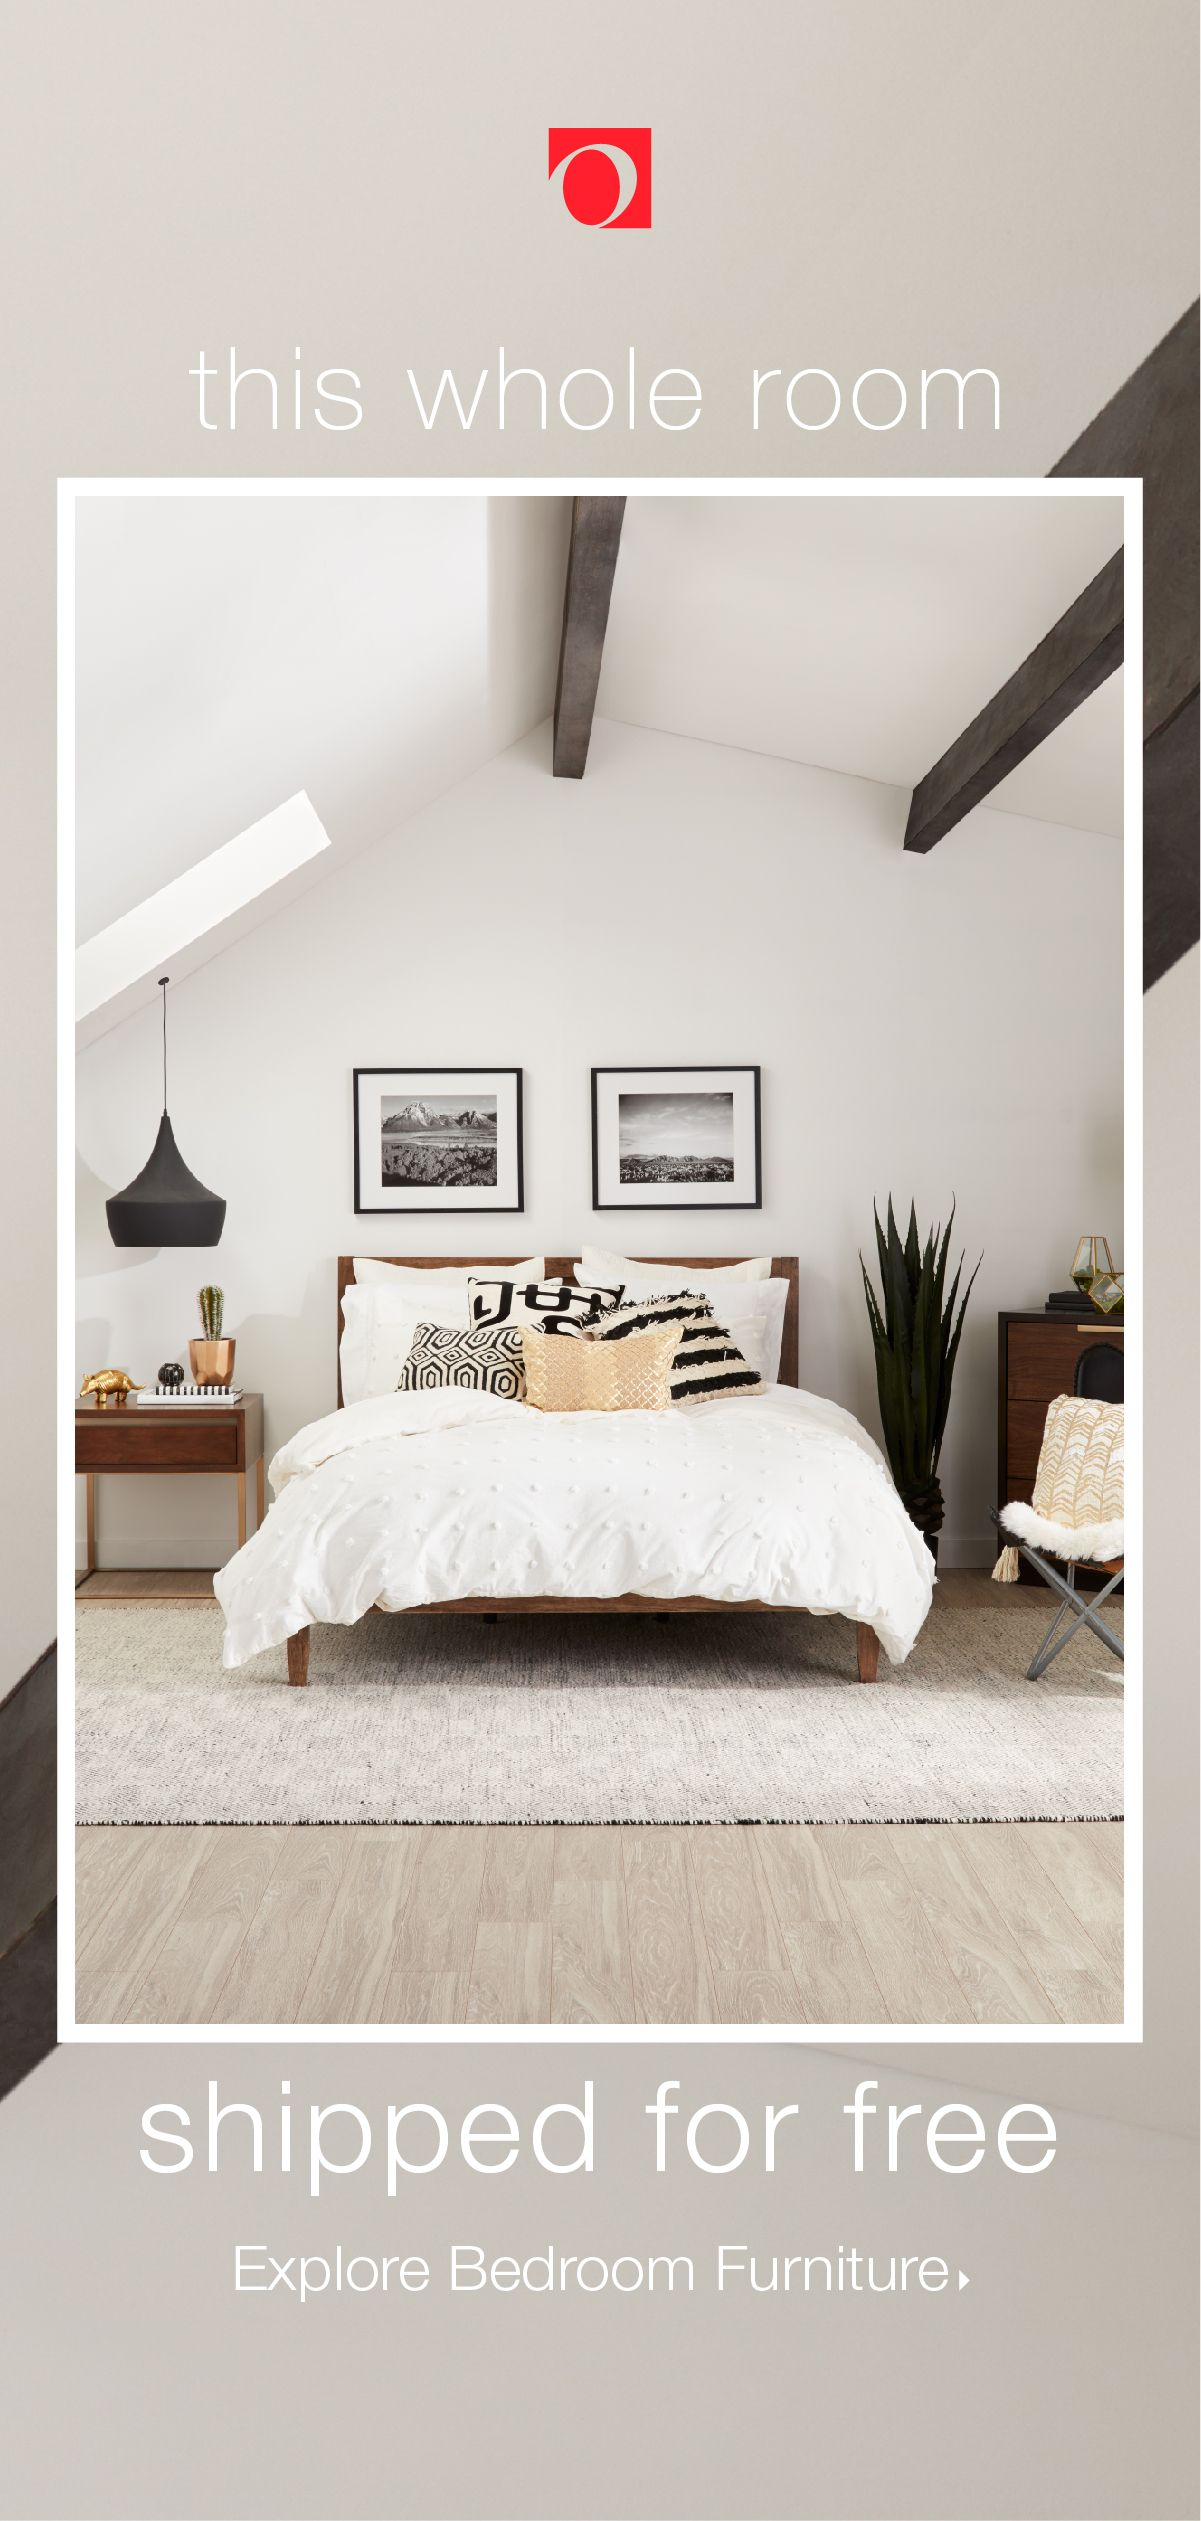 Completely Transform The Look Of Your Bedroom With All New